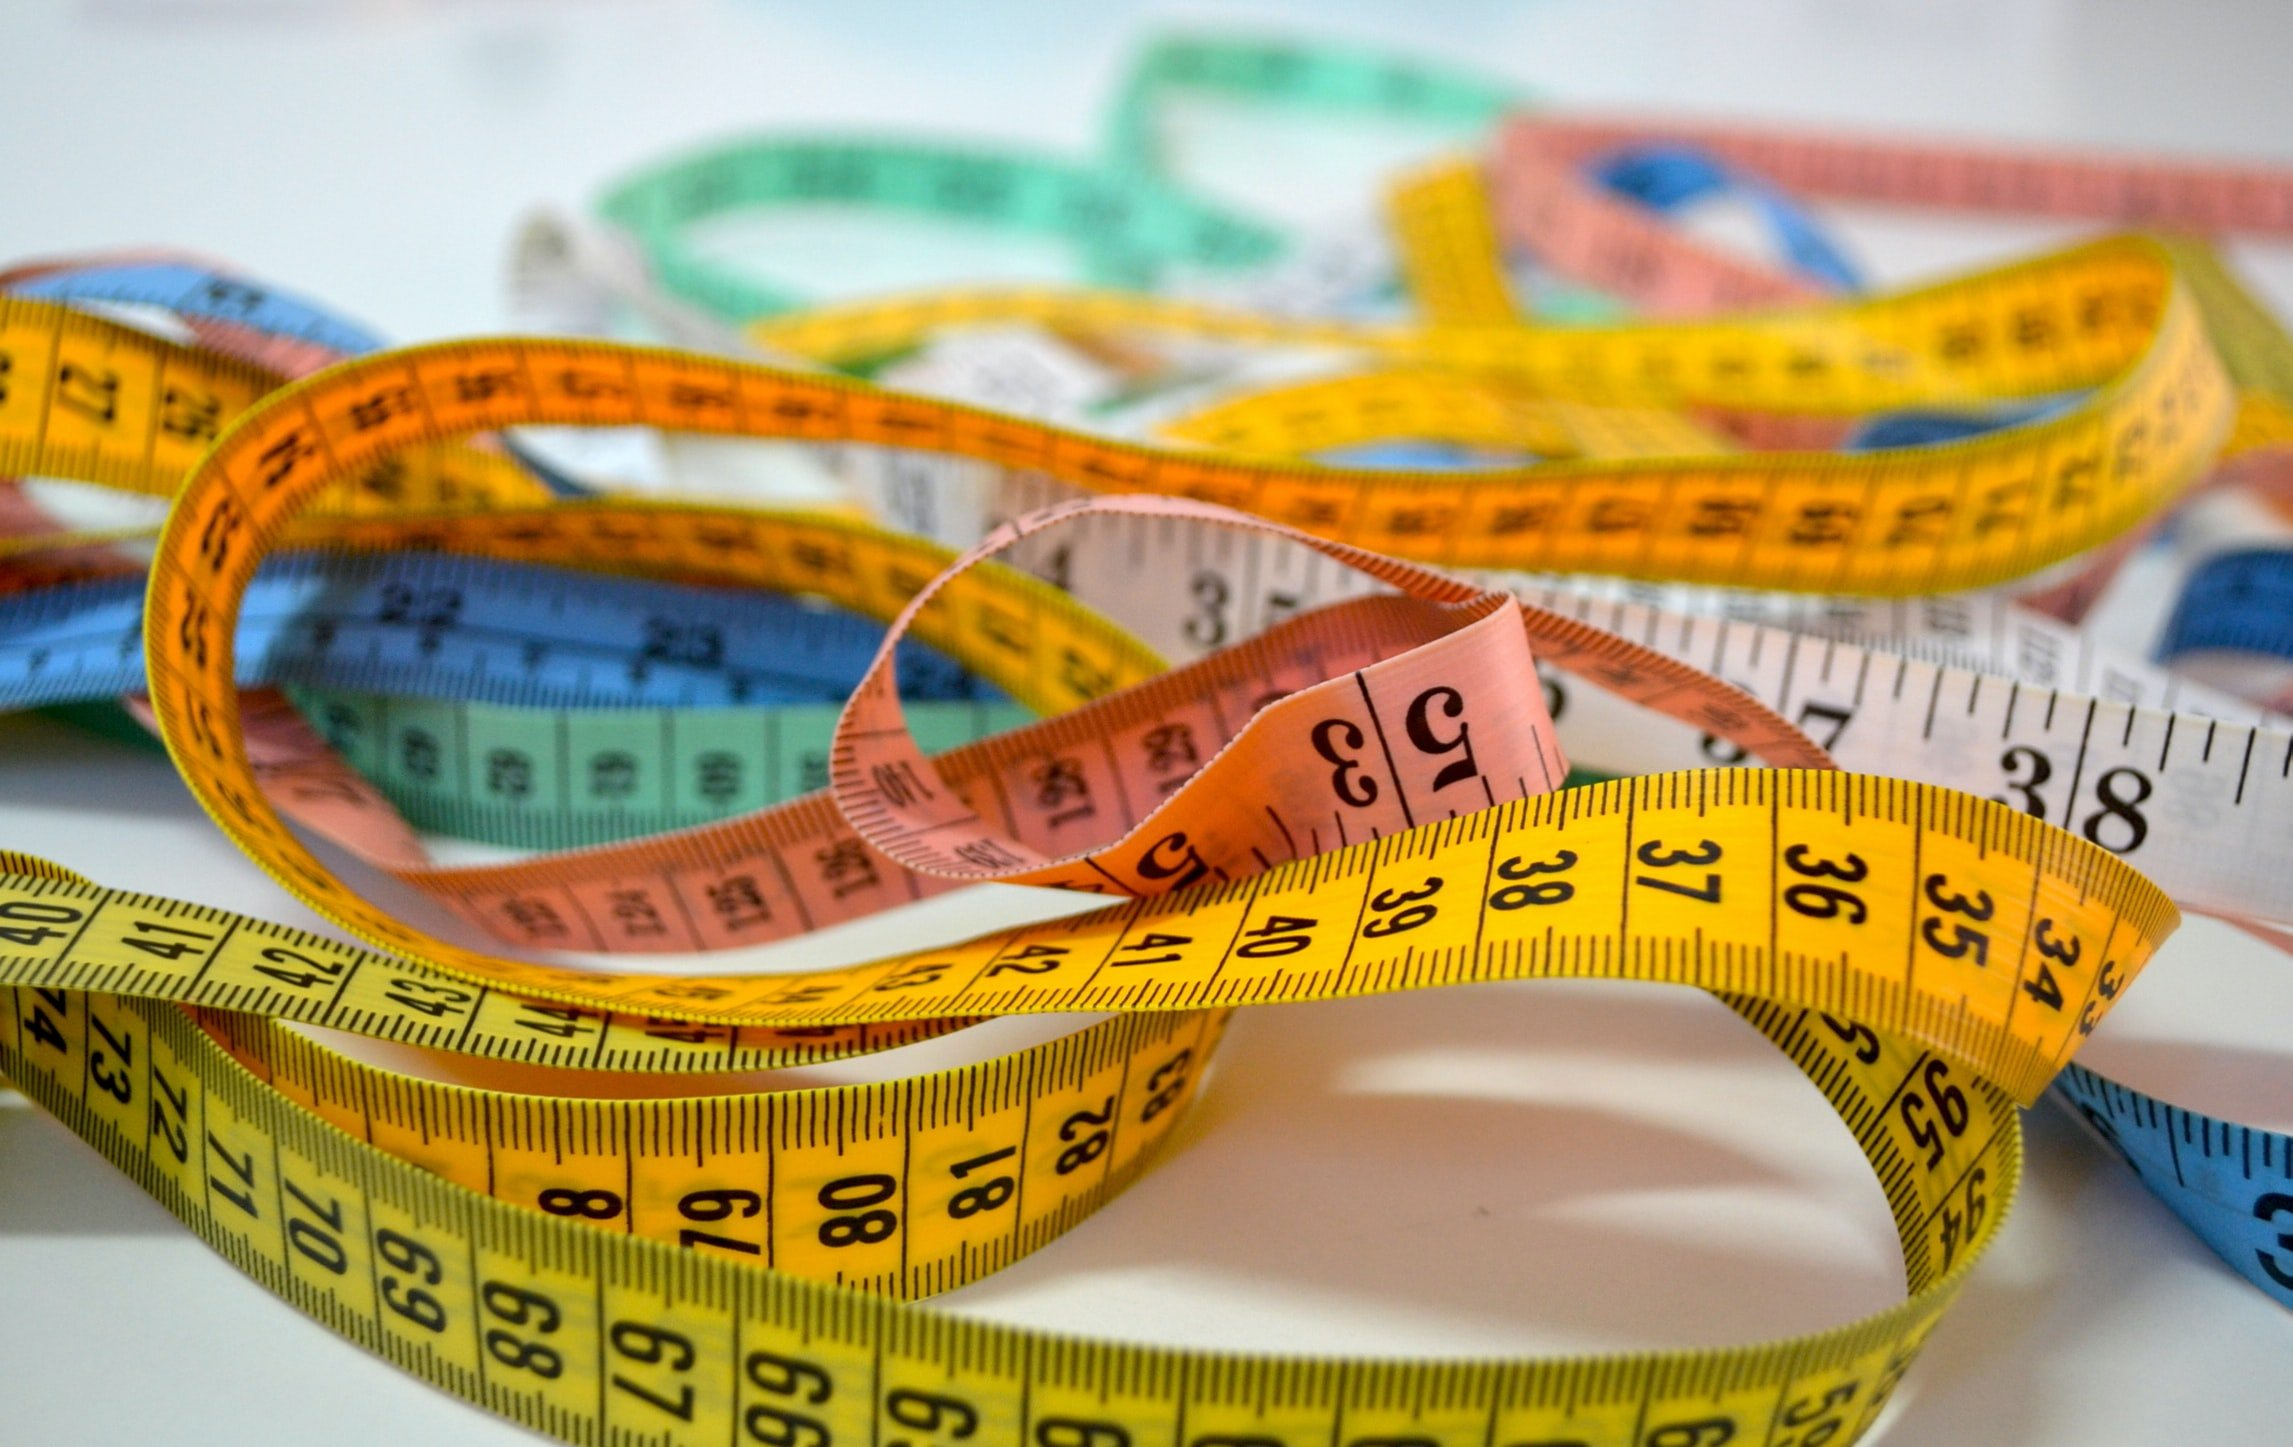 Best Sewing Tools for Beginners: Sewing Tape Measure